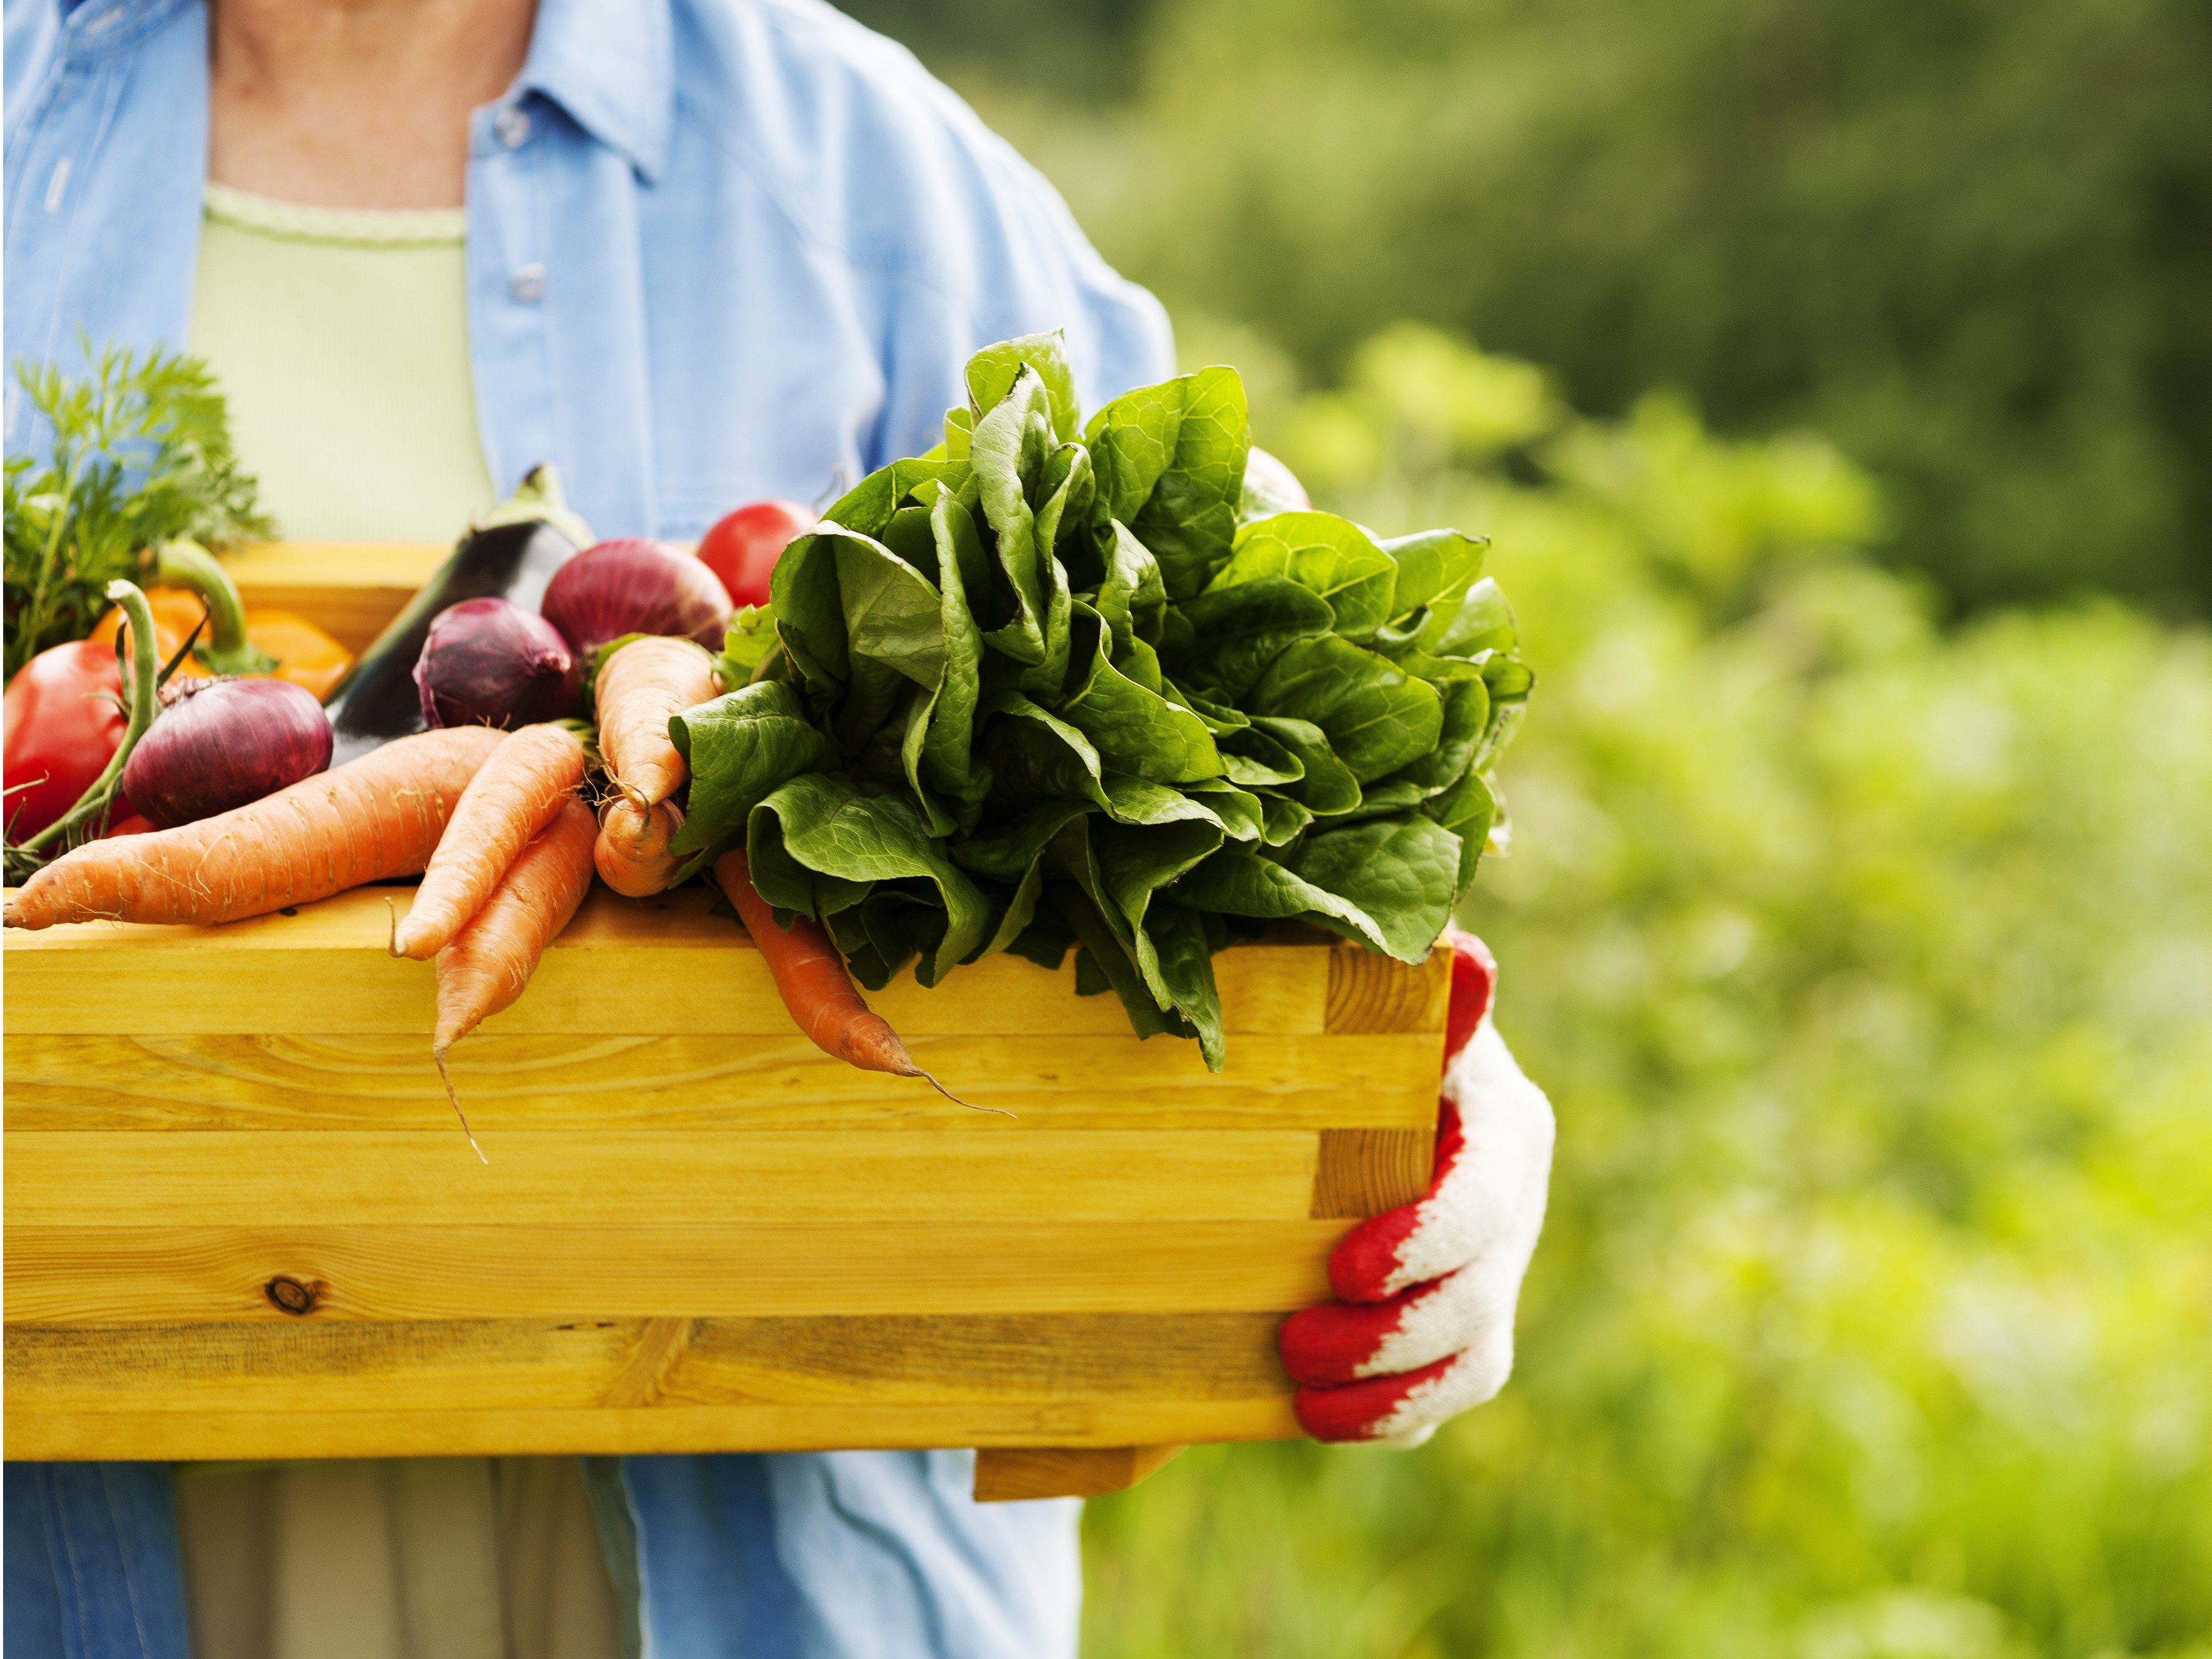 Find a Sunny, Open Site for Your Vegetable Garden